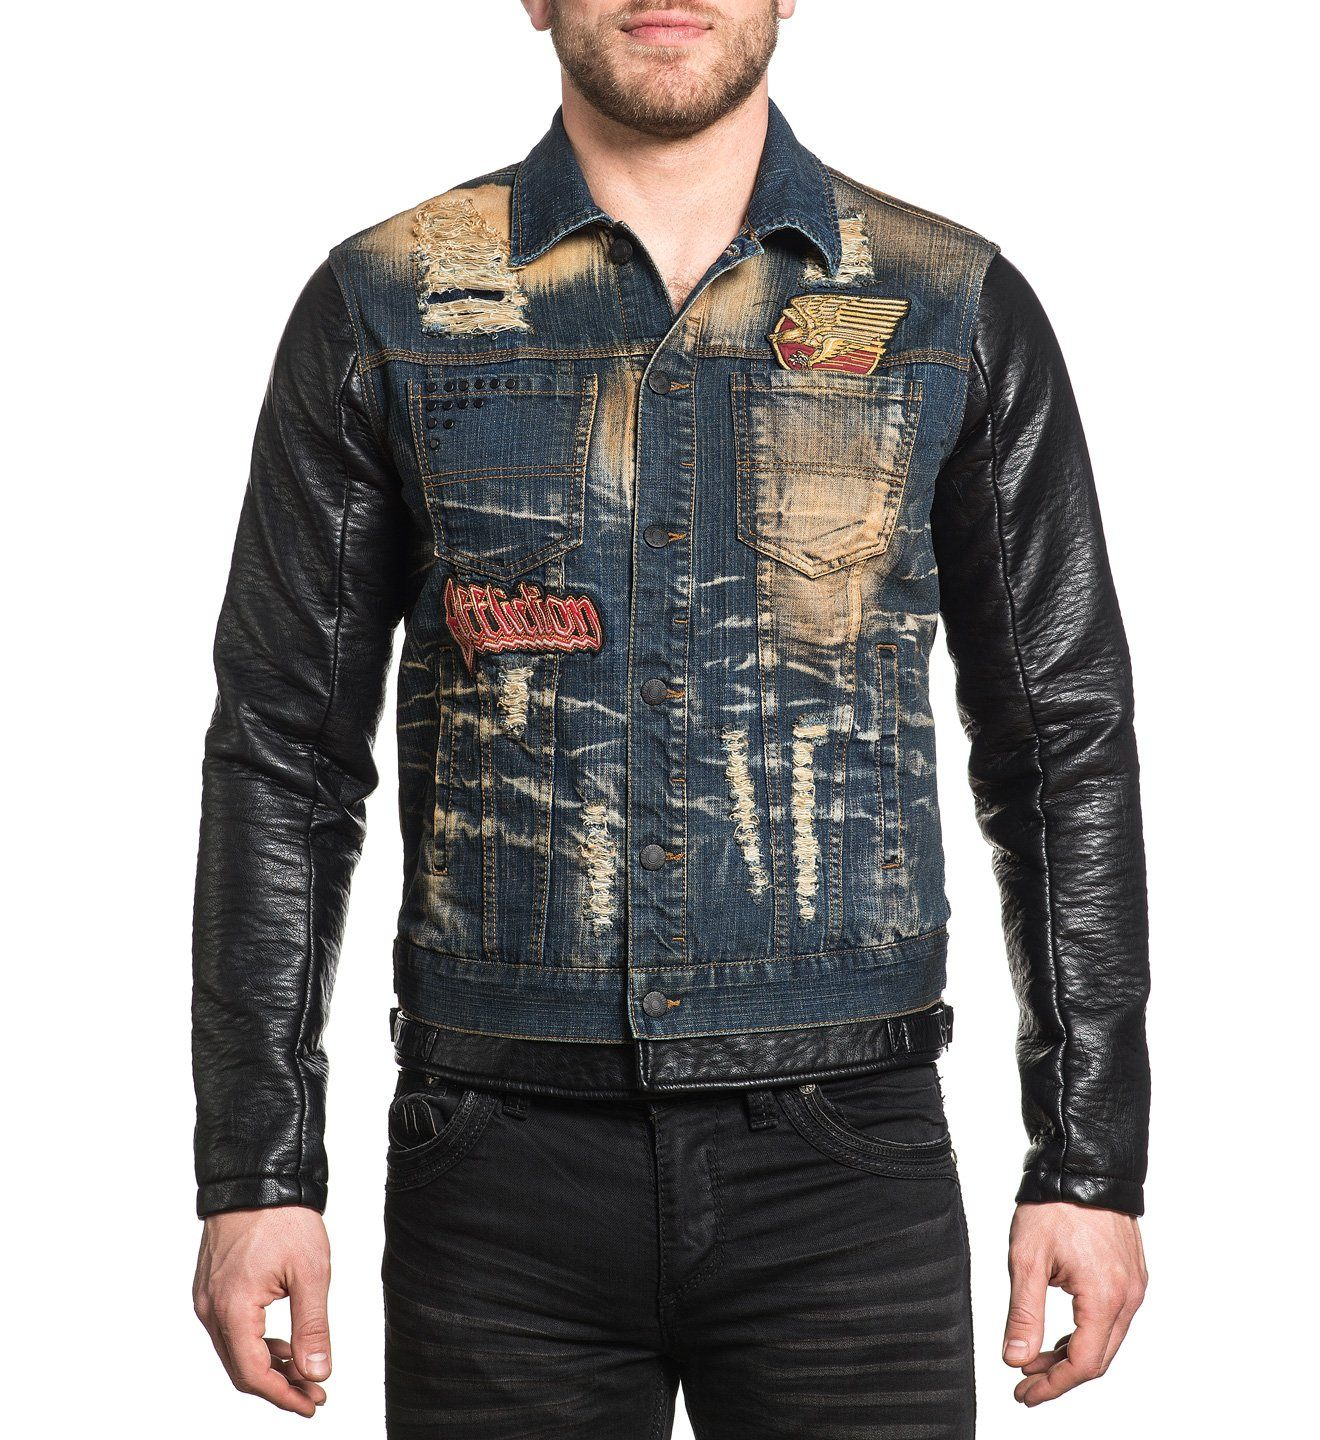 Morrison Trucker Jacket - Mens Jackets - Affliction Clothing